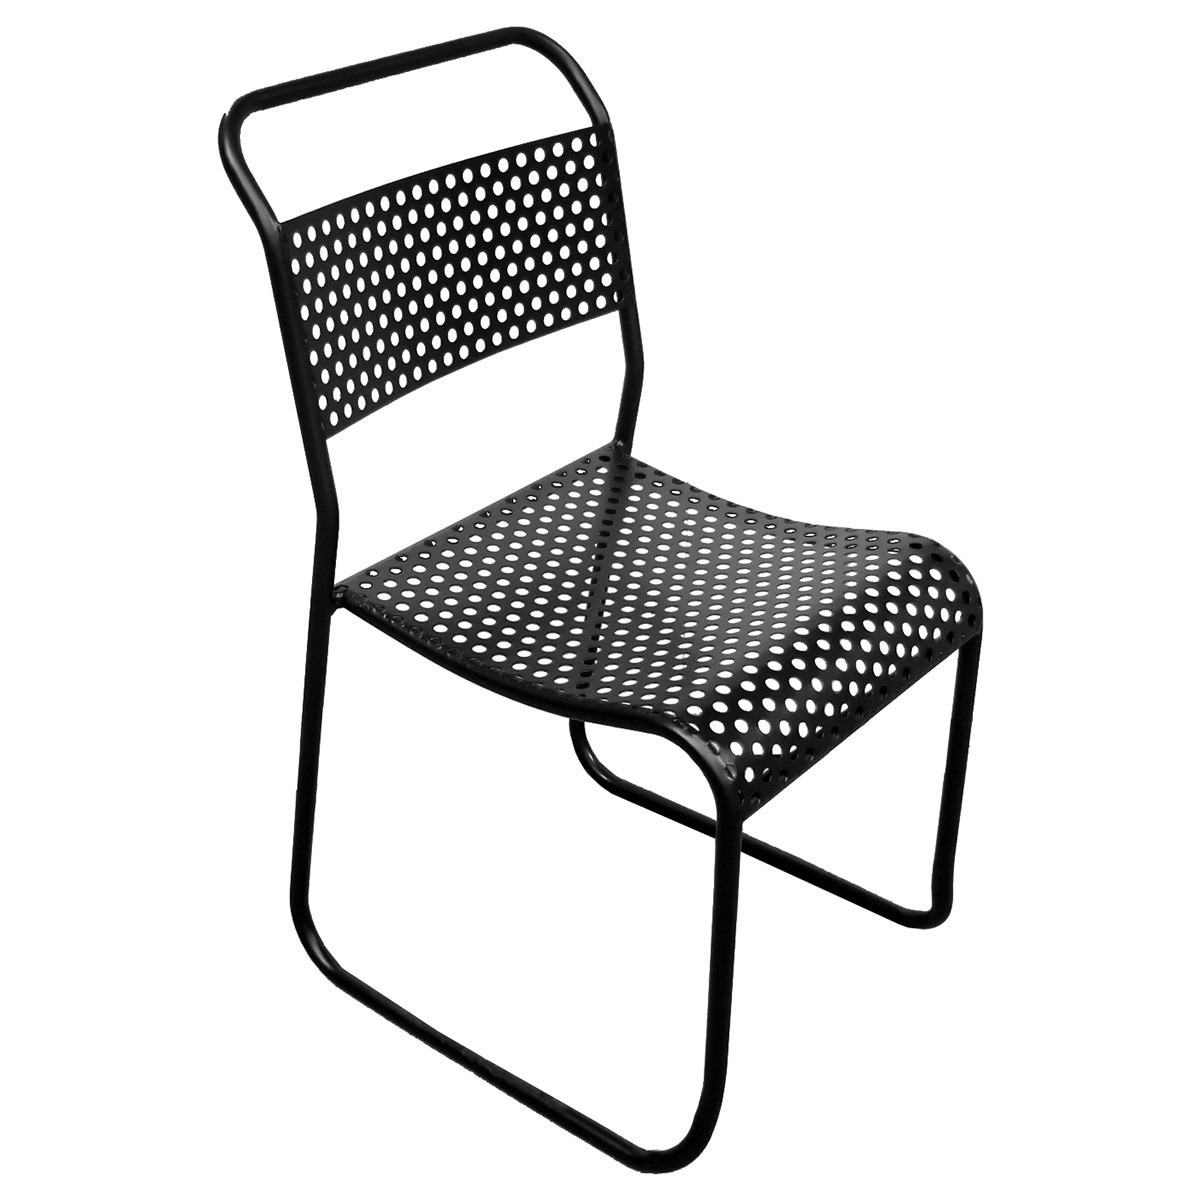 Westleigh Commercial Grade Industrial Iron Tube Chair, Black